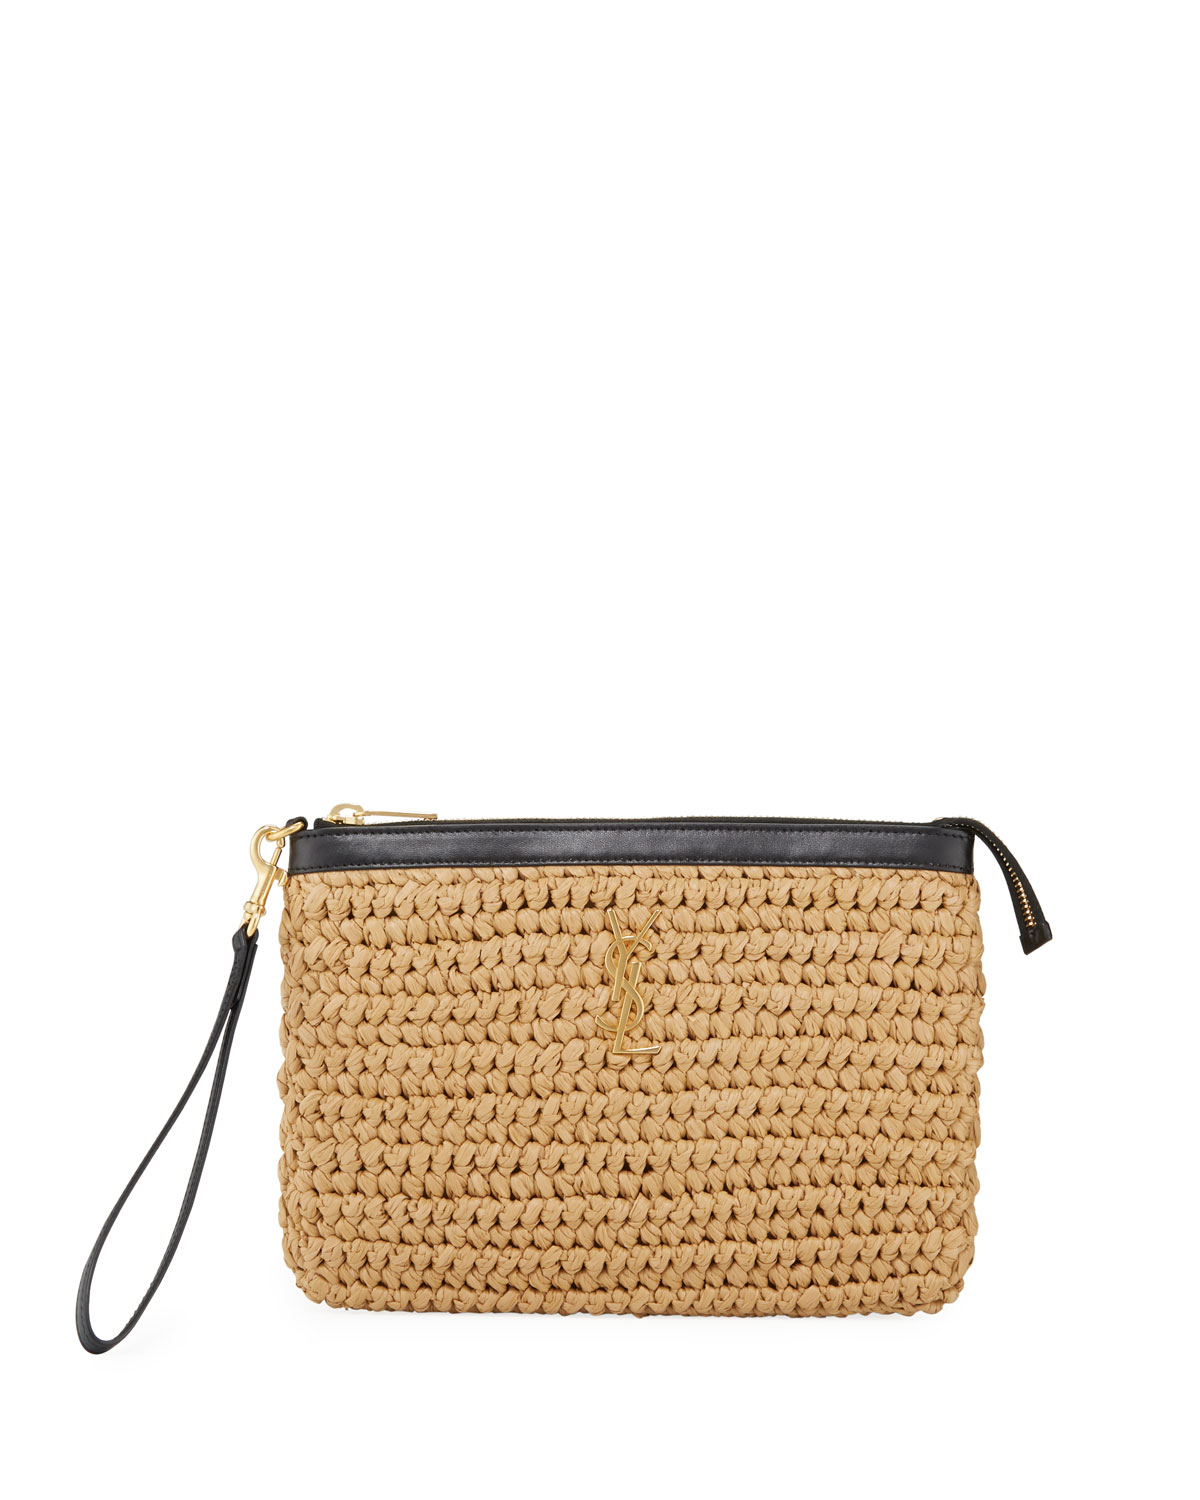 available top-rated authentic dependable performance Monogram YSL Raffia Wristlet Pouch Bag